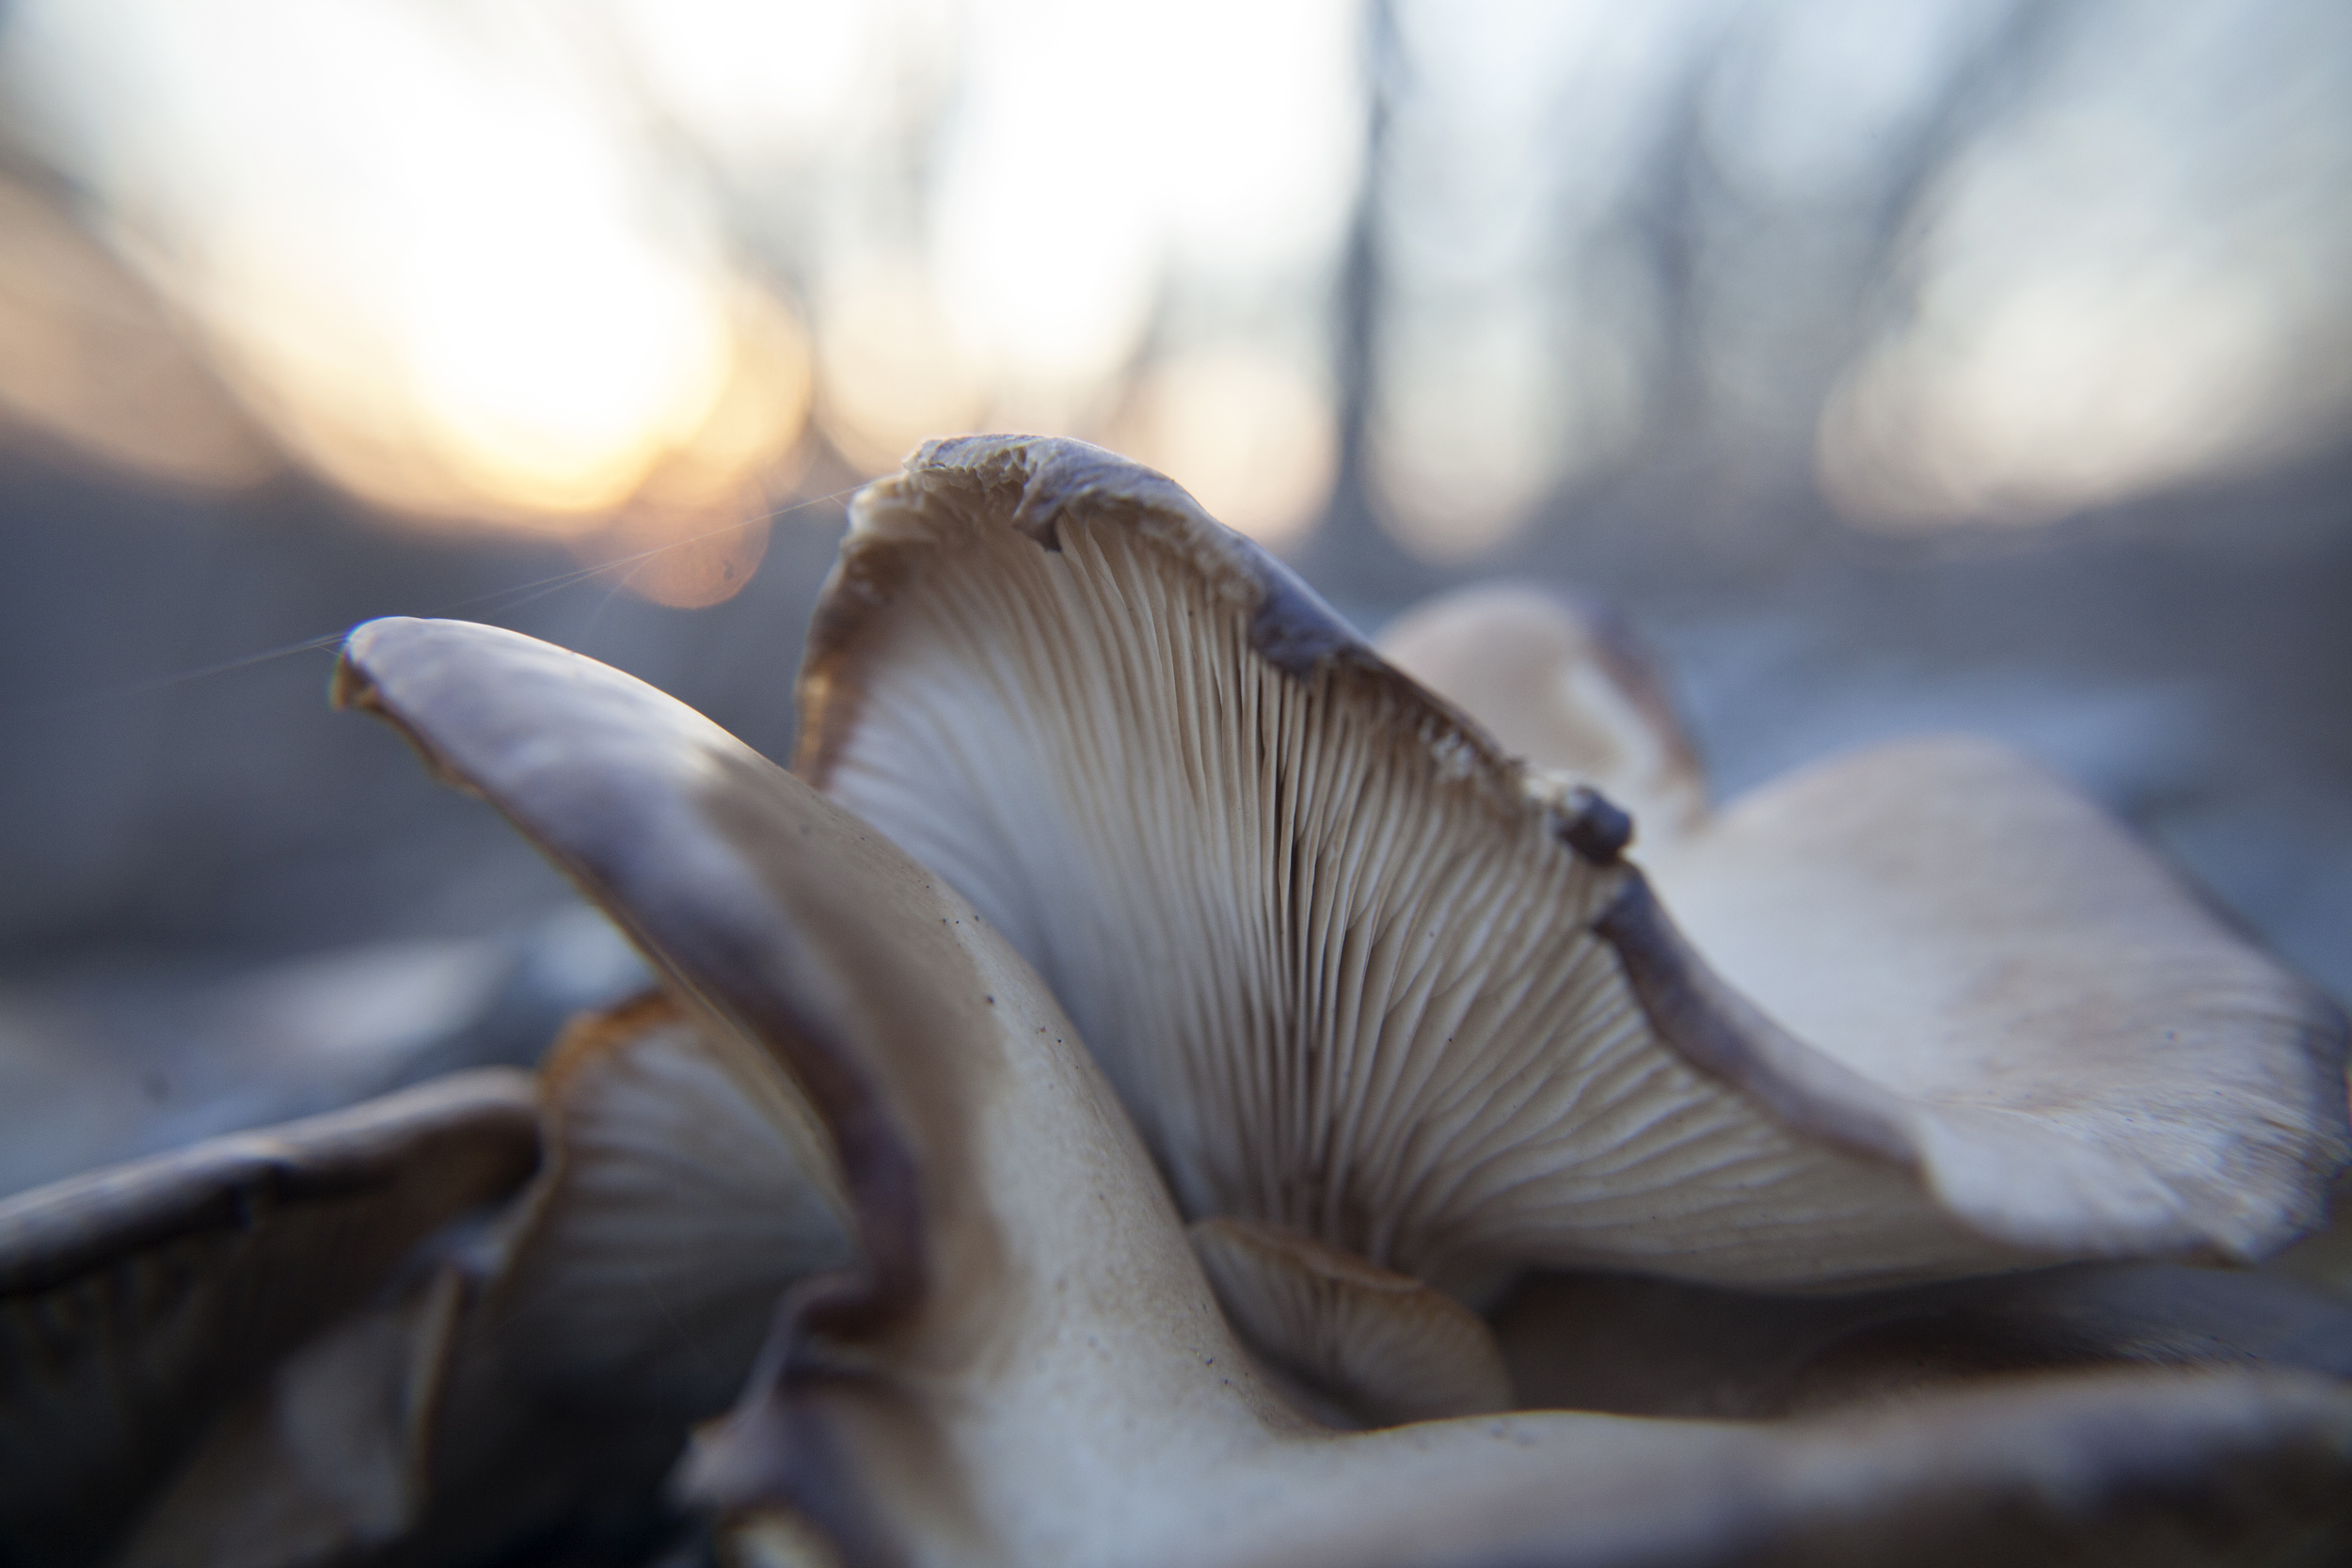 This beautiful wild mushroom makes me think of an evening gown turned upside down.